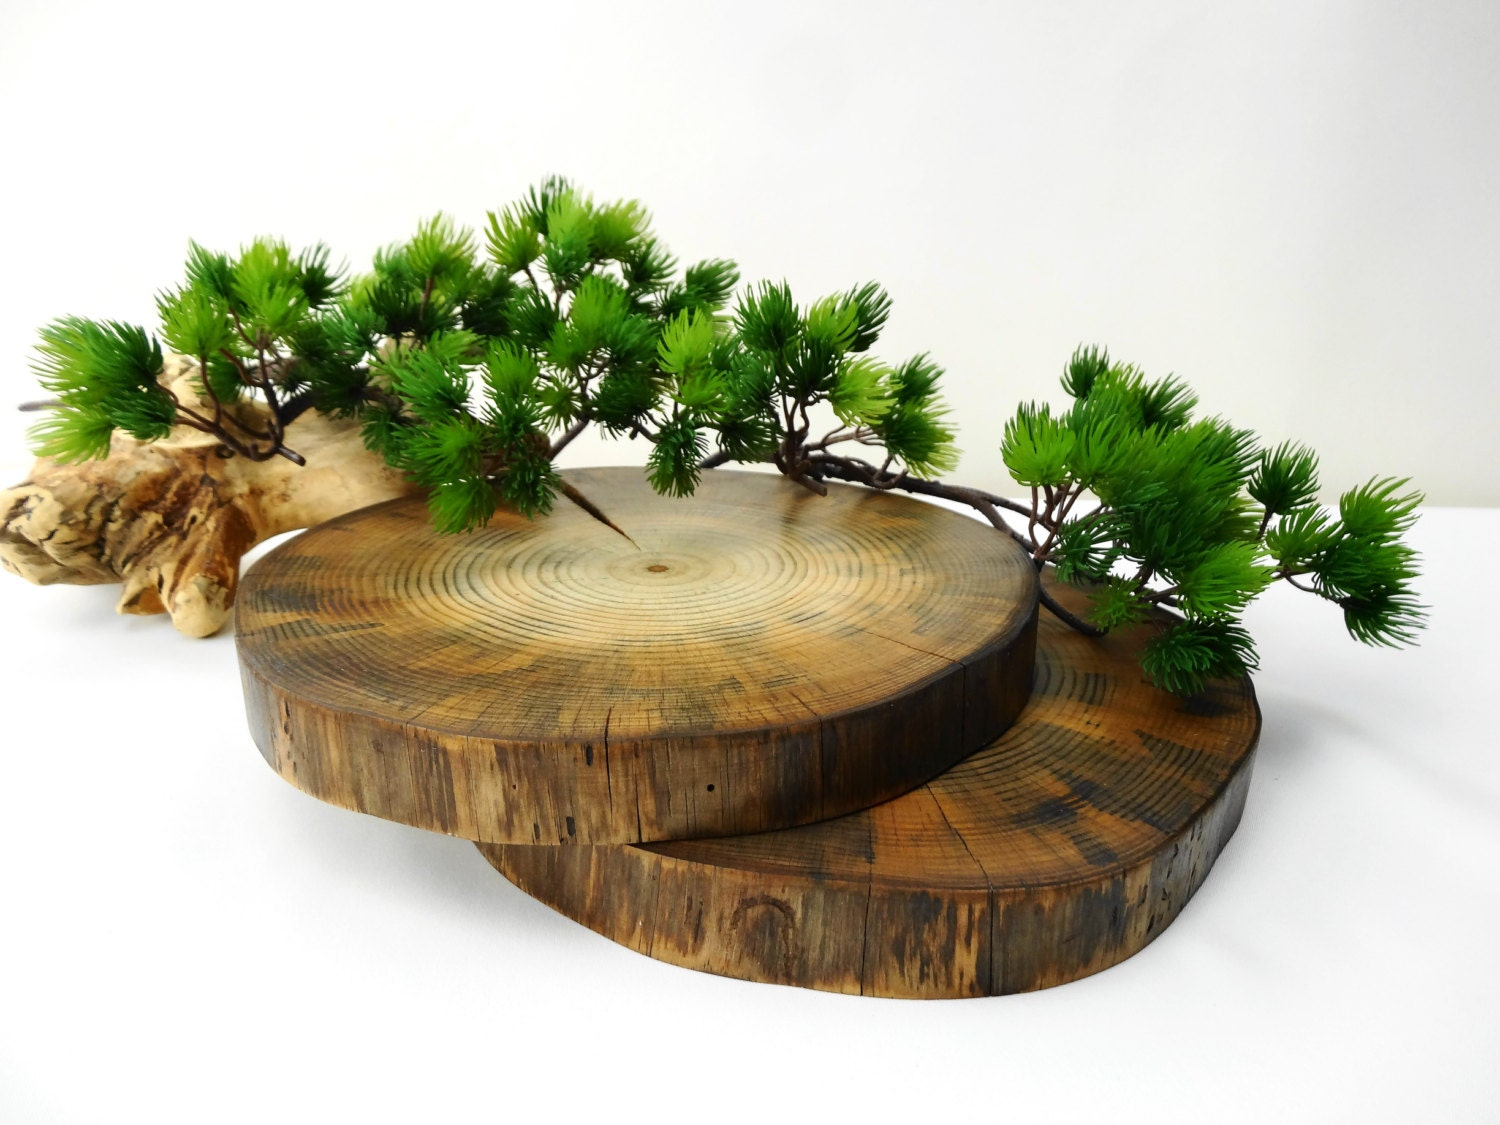 Wood slices 9 inch wood slices tree slice tree trunk slice for Wood trunk slices